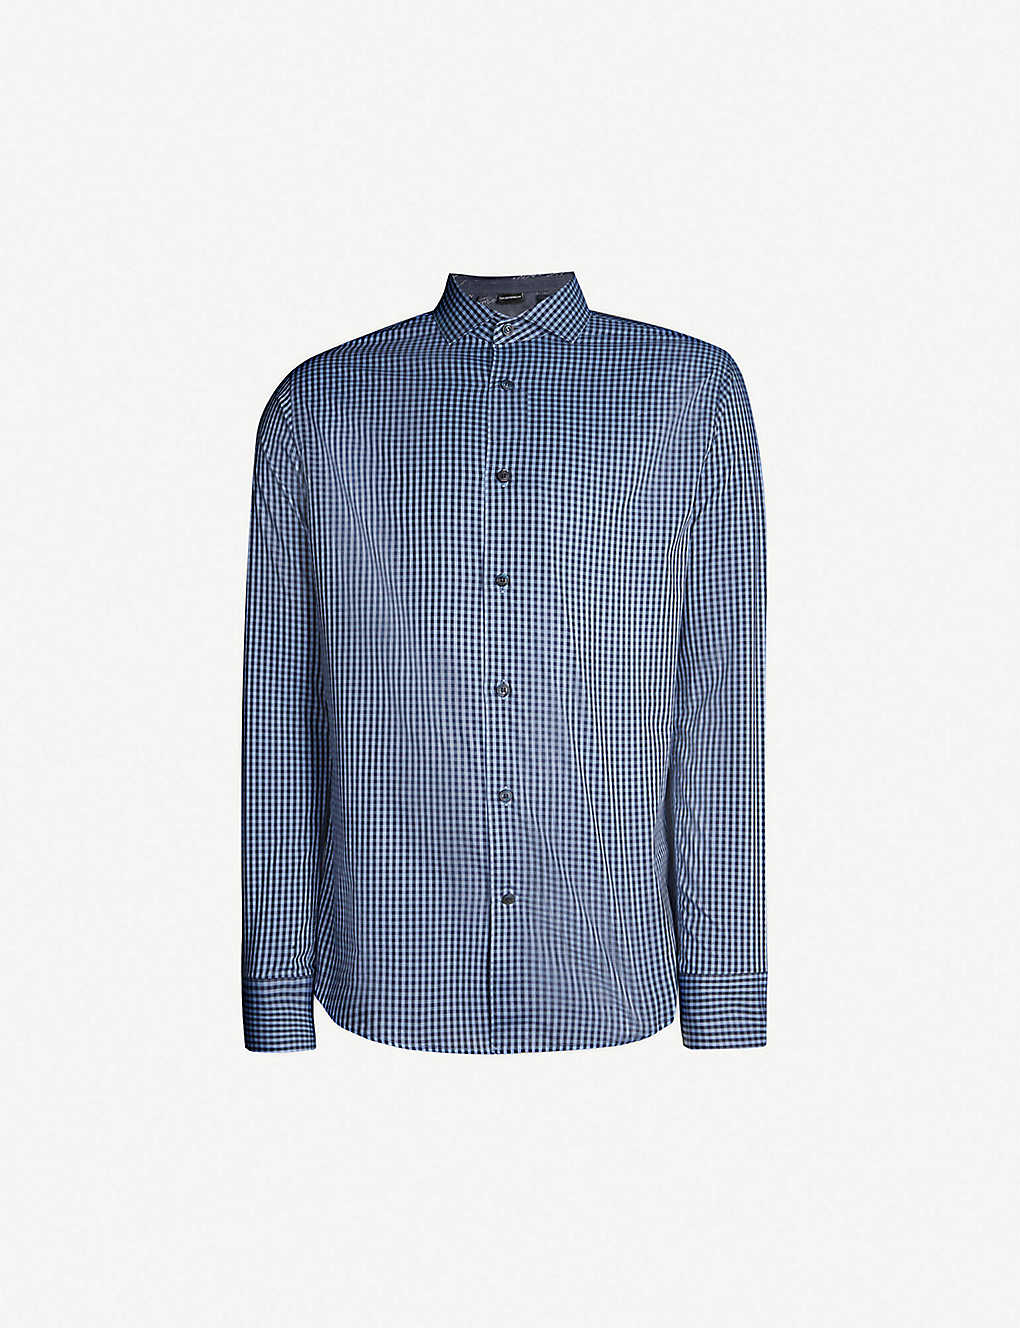 932ffa4d4d5 TIGER OF SWEDEN - Farrell slim-fit gingham cotton shirt | Selfridges.com